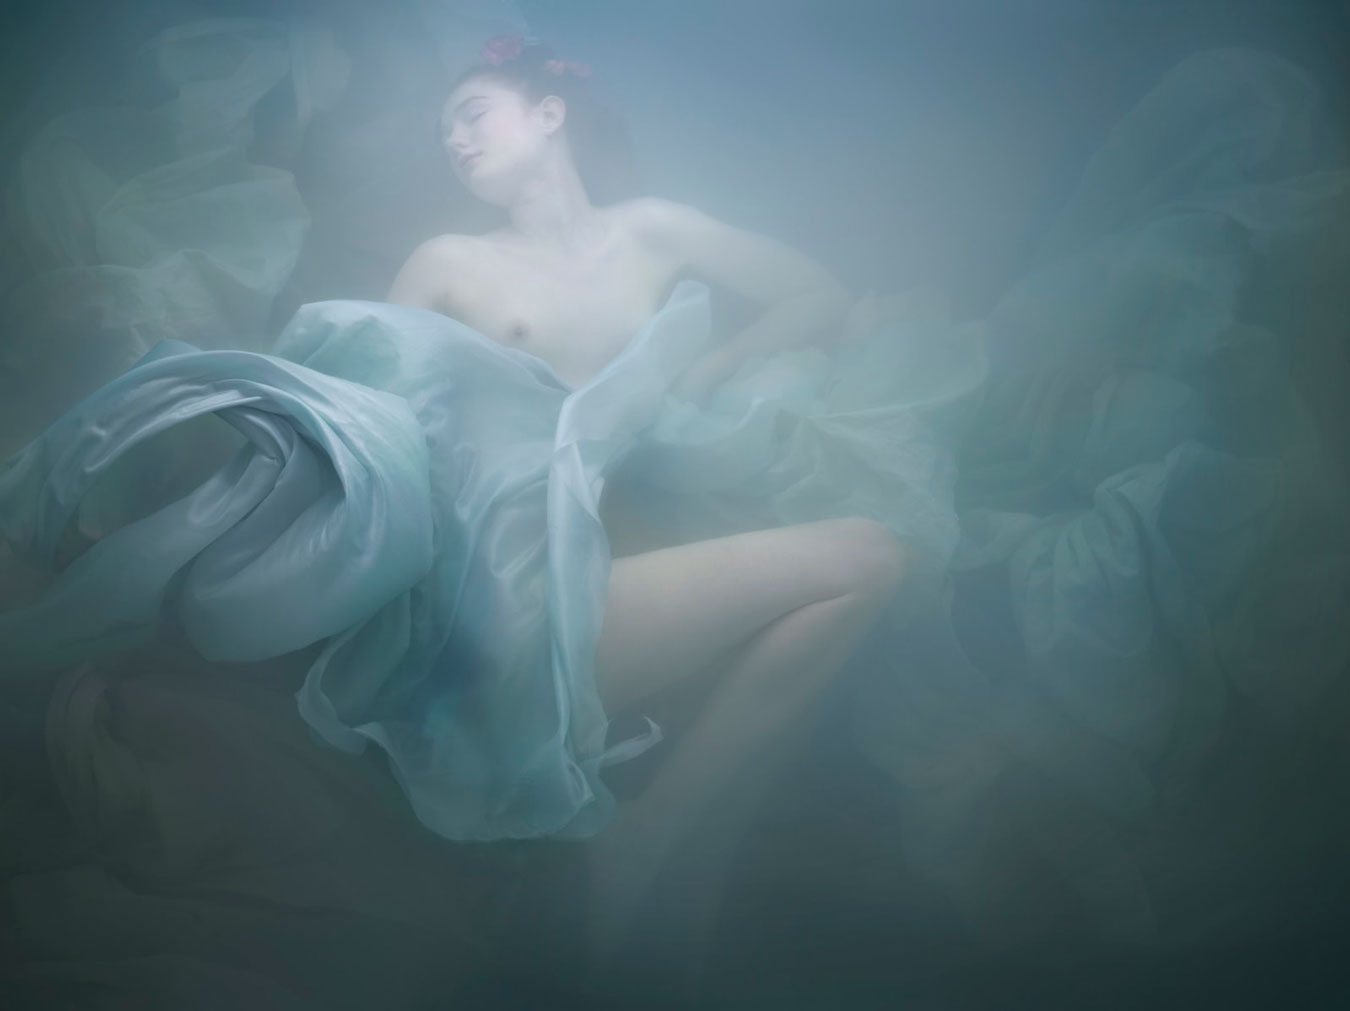 anonymous-woman-draped-in-blue-cloth-submerged-under-milky-turquoise-water